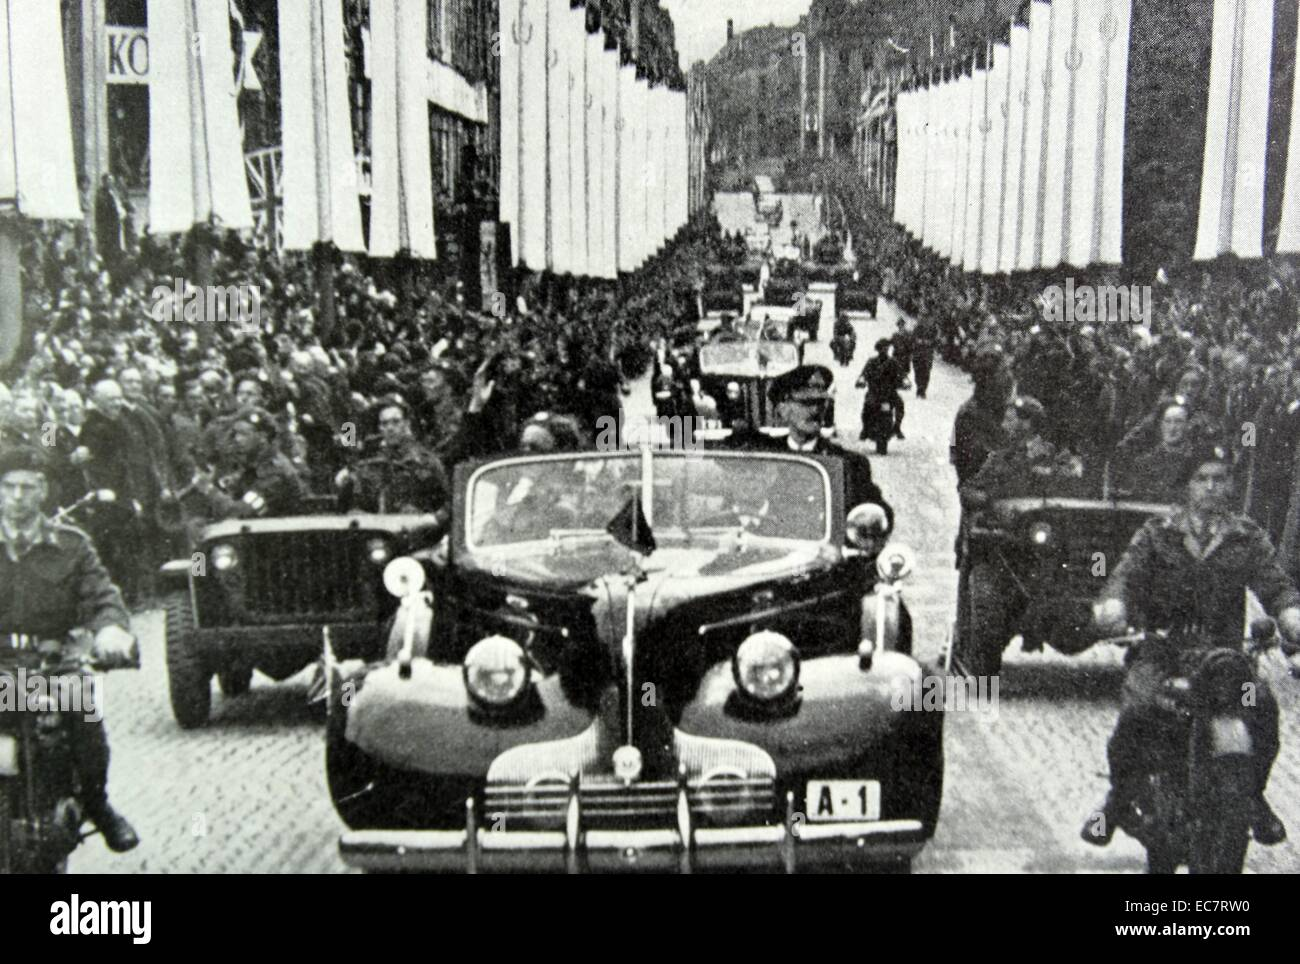 King Haakon of Norway return home after the liberation of Norway after World War Two - Stock Image